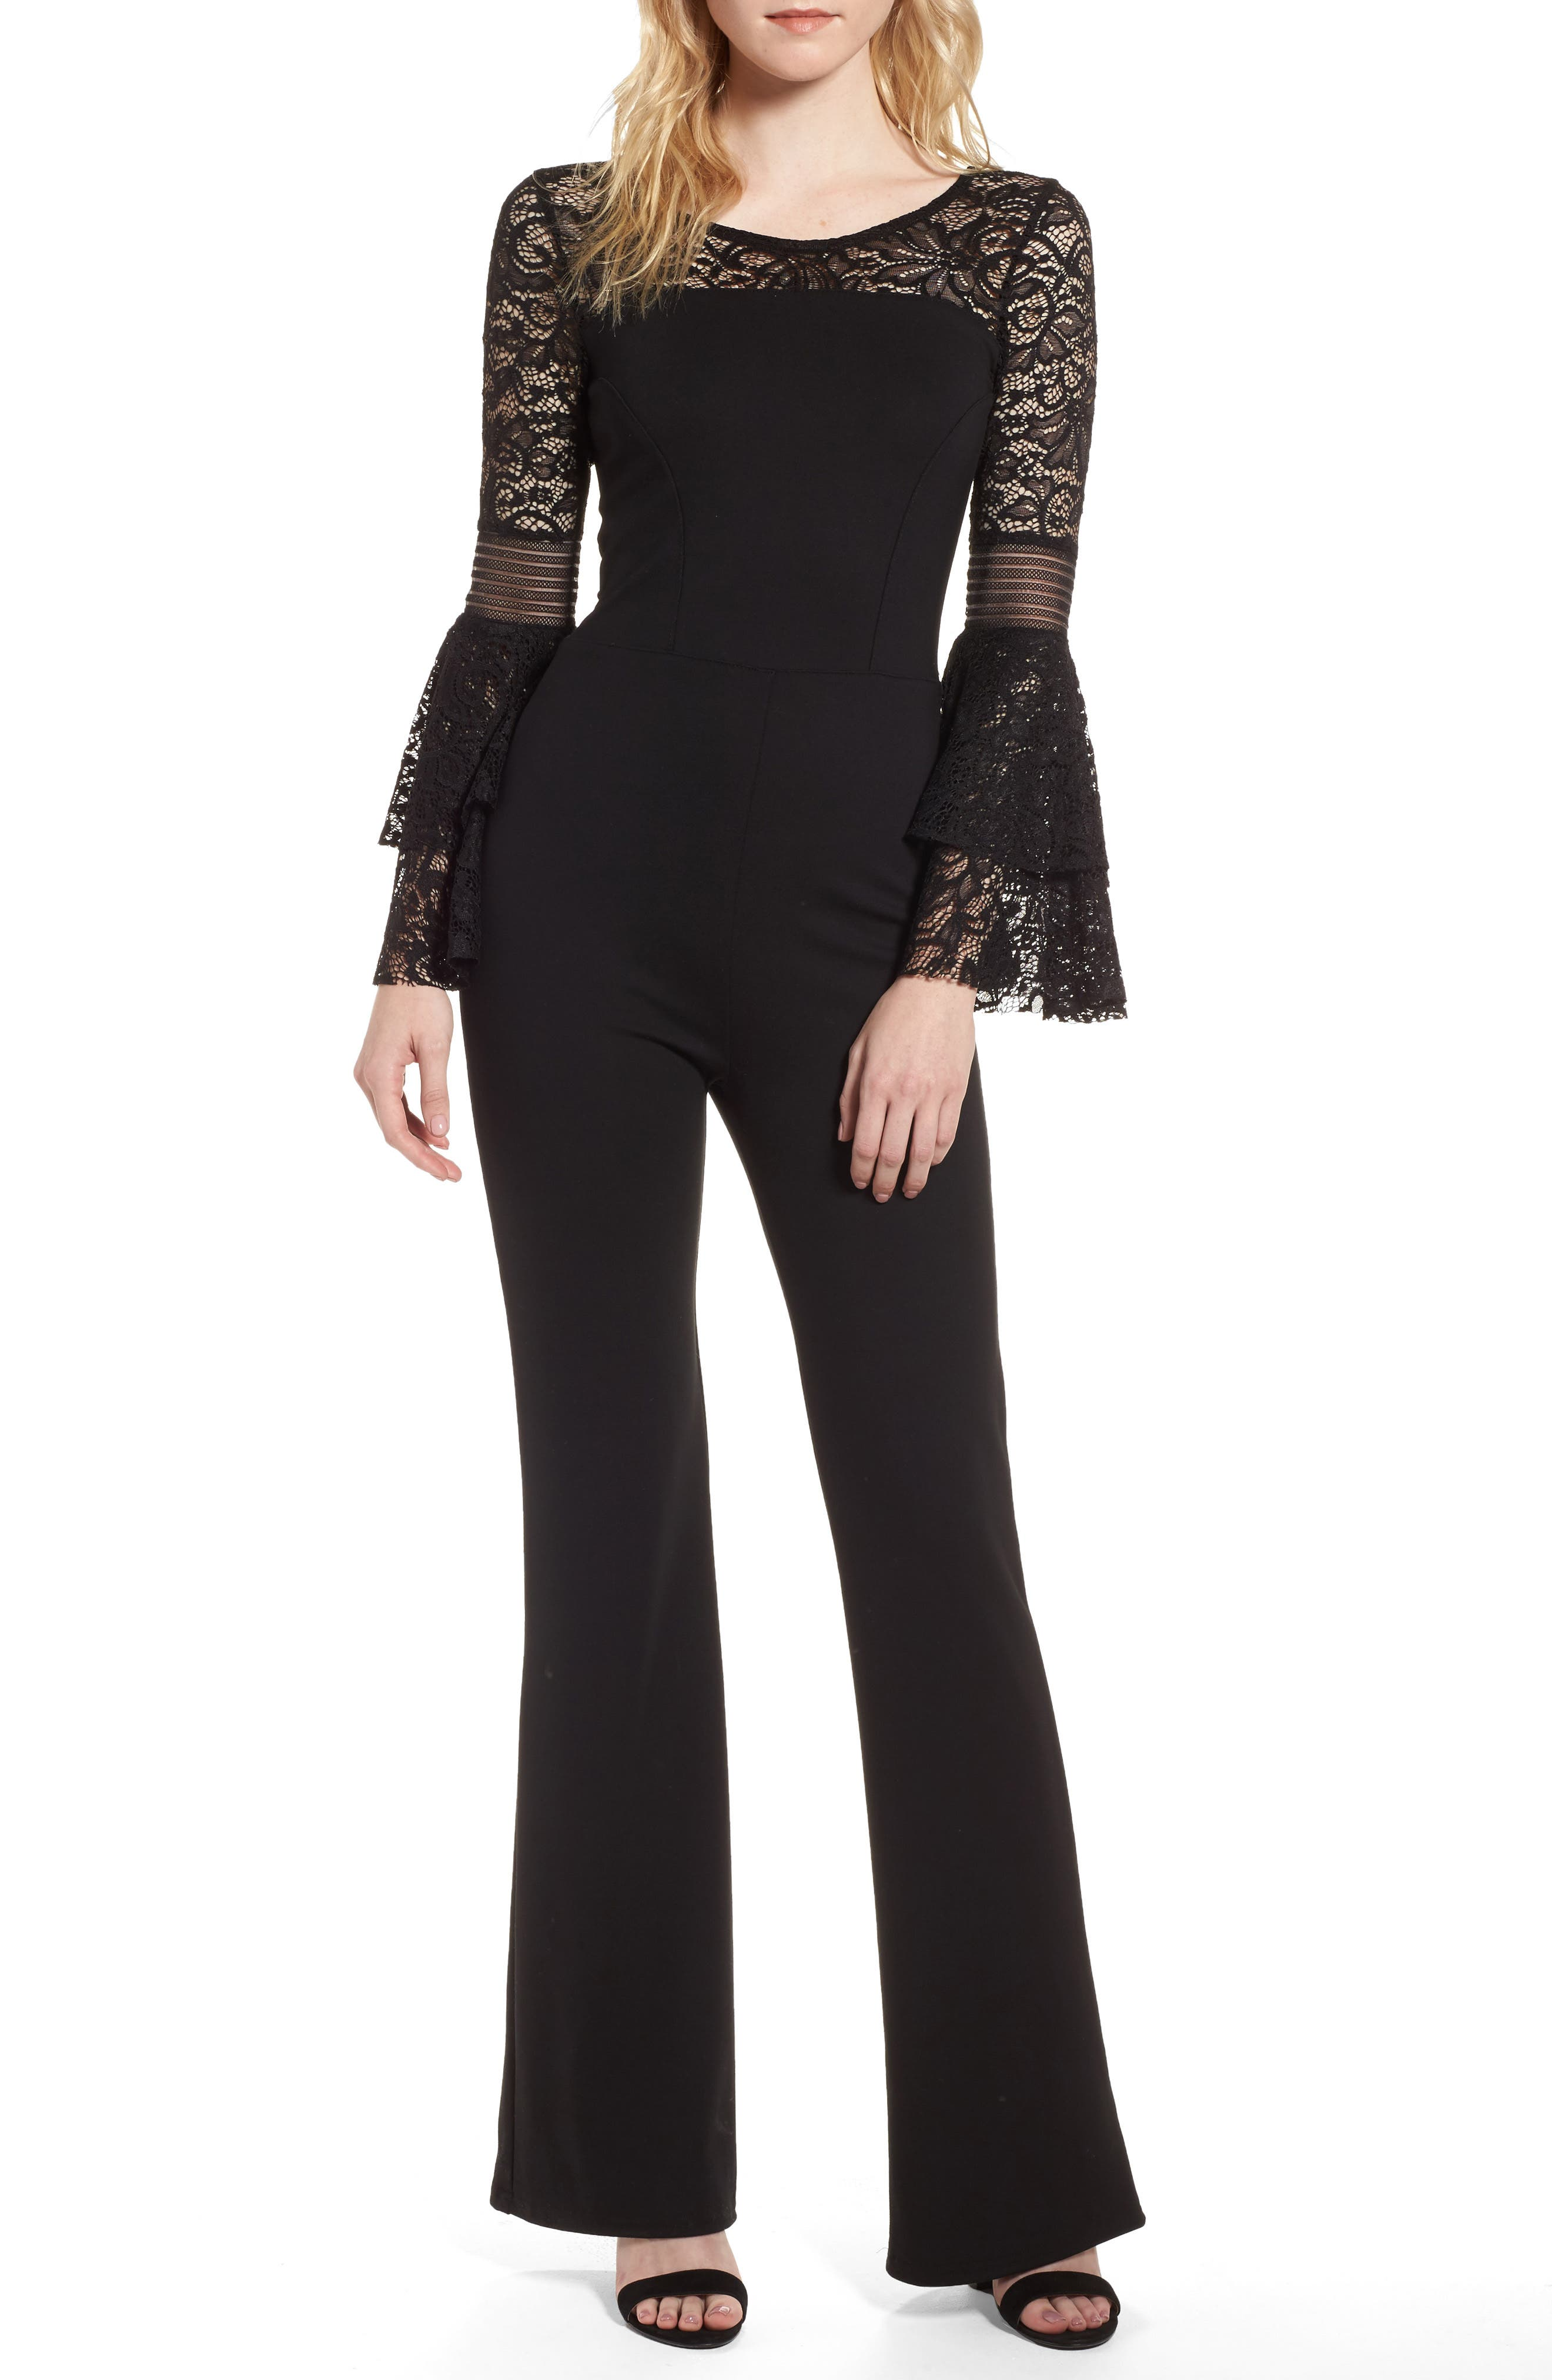 Floetry Lace Bell Sleeve Romper,                         Main,                         color, 001